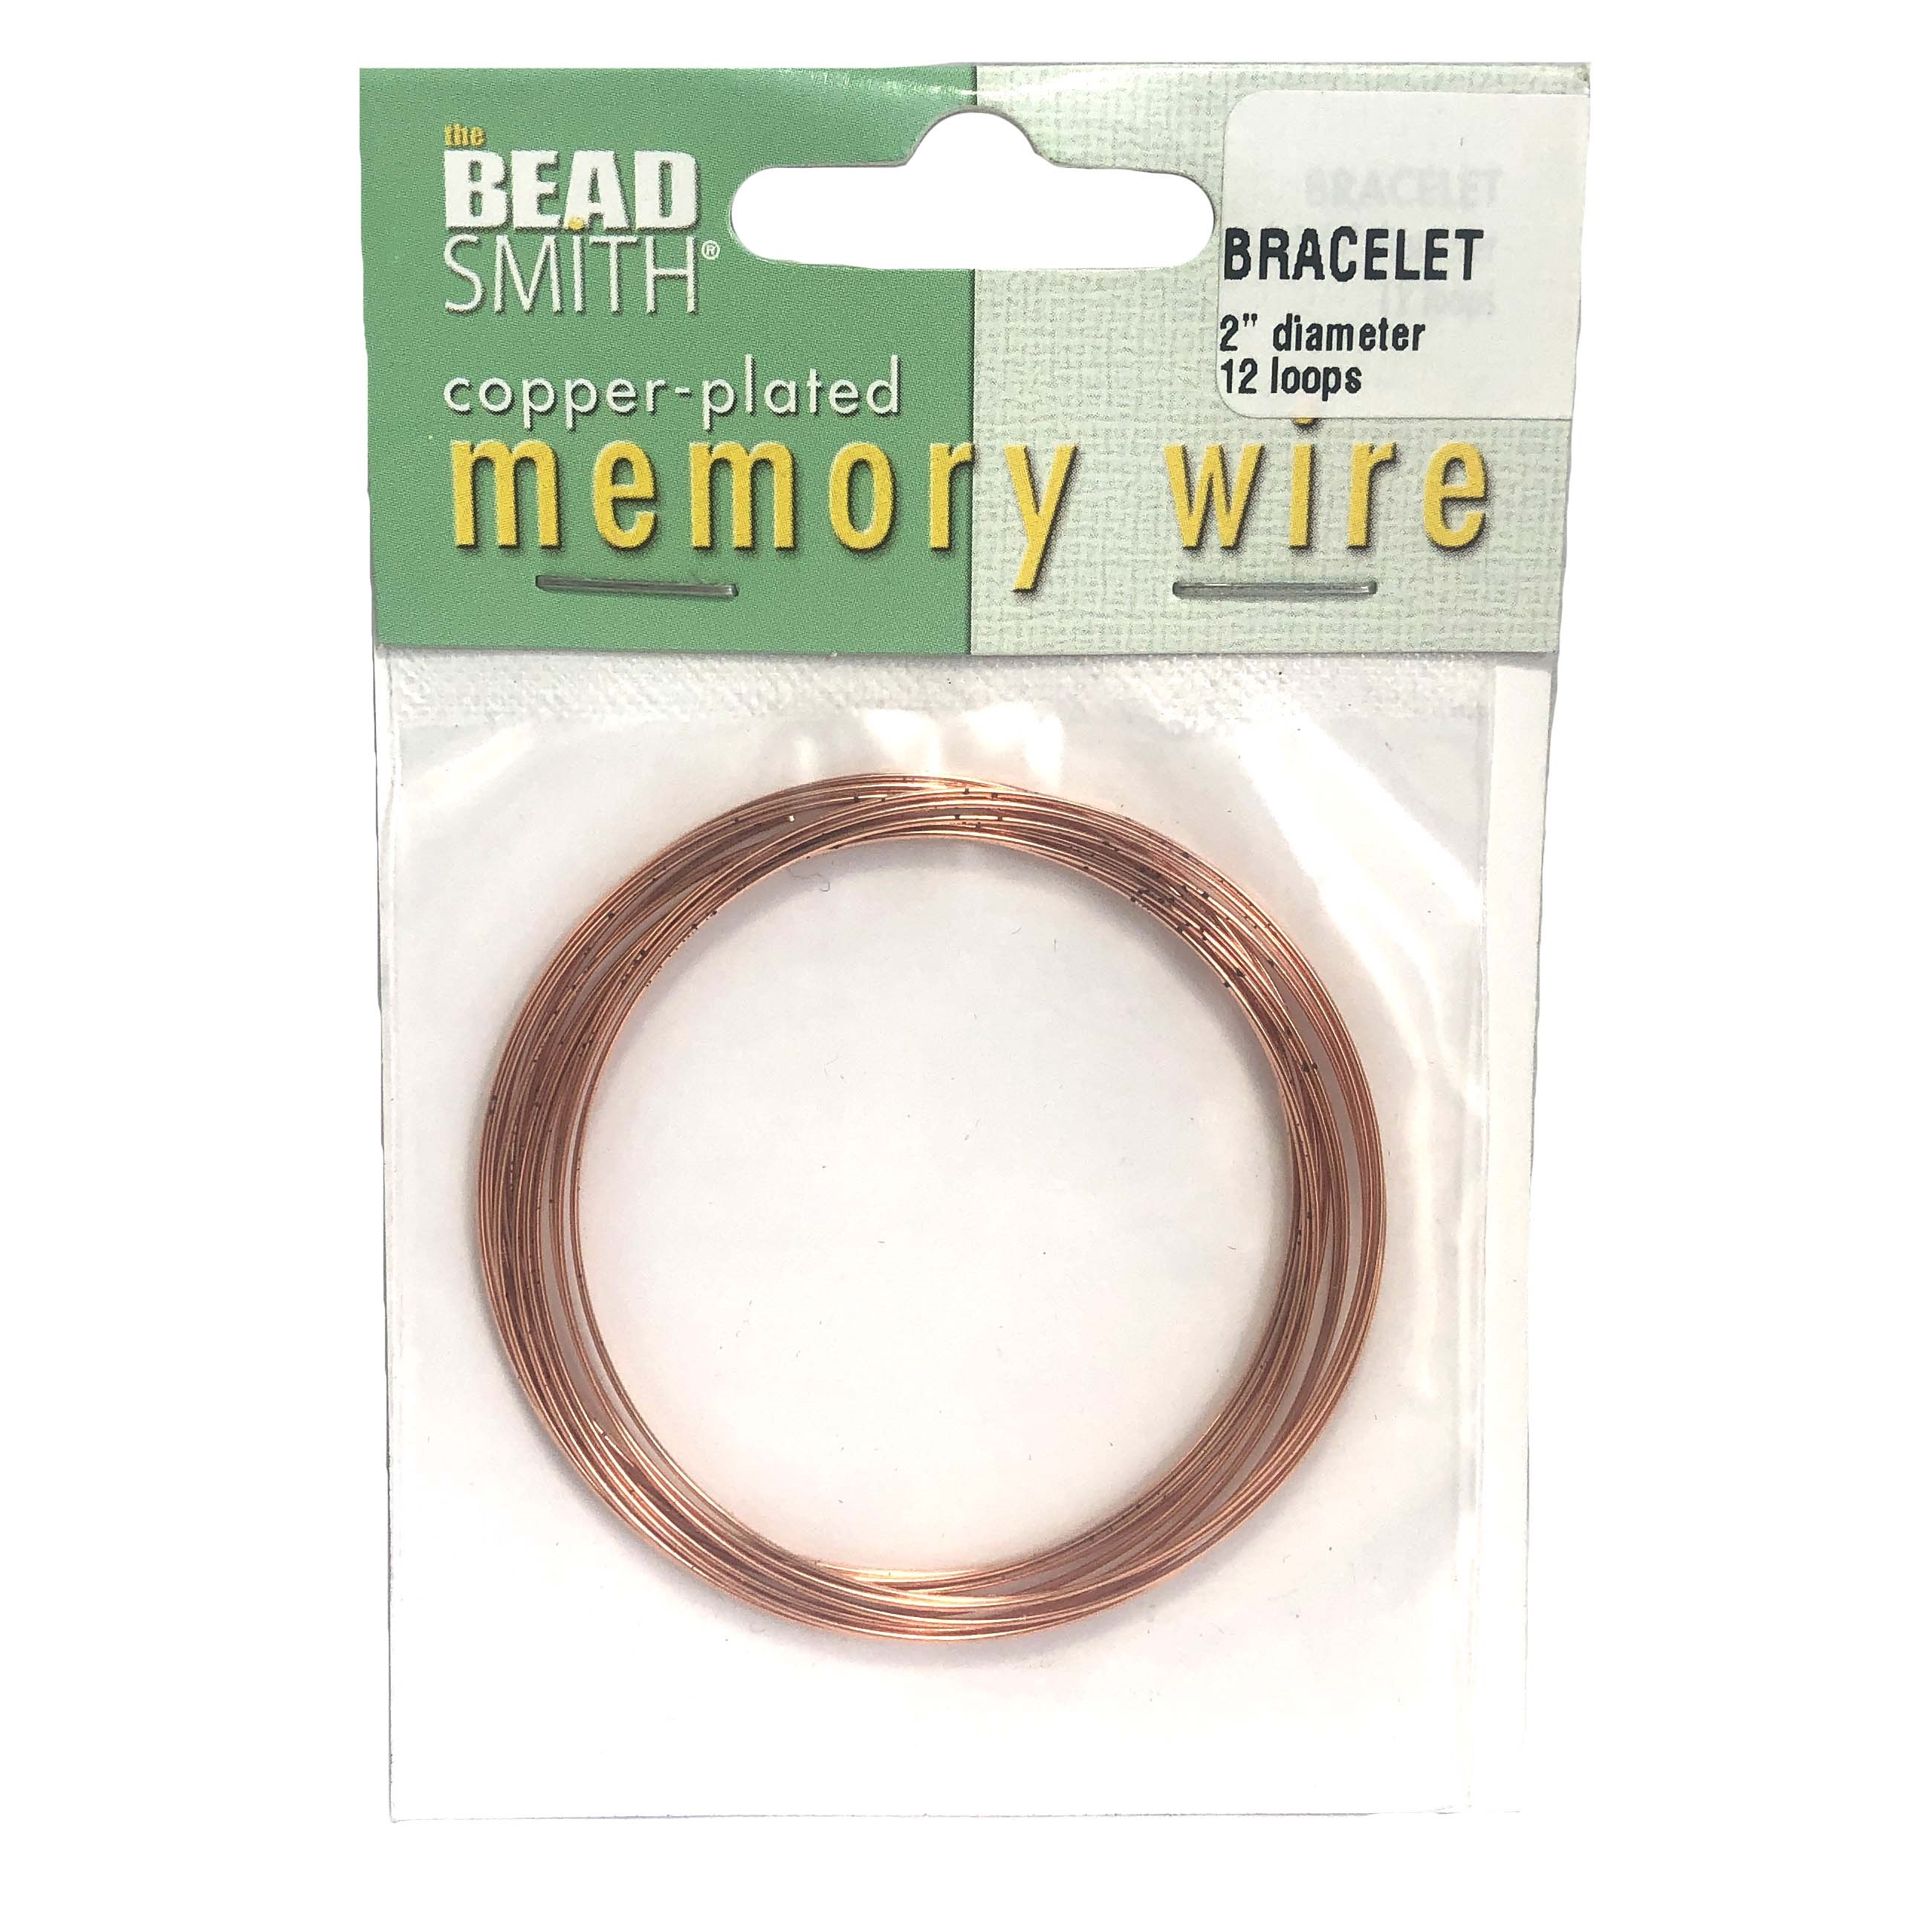 Round Memory Wire, Copper Plate, 2 inch, bracelet wire, jewelry wire, craft wire, jewelry making supplies, stainless steel memory wire, 12 loop wire, round wire, copper wire, bracelet making, 0135